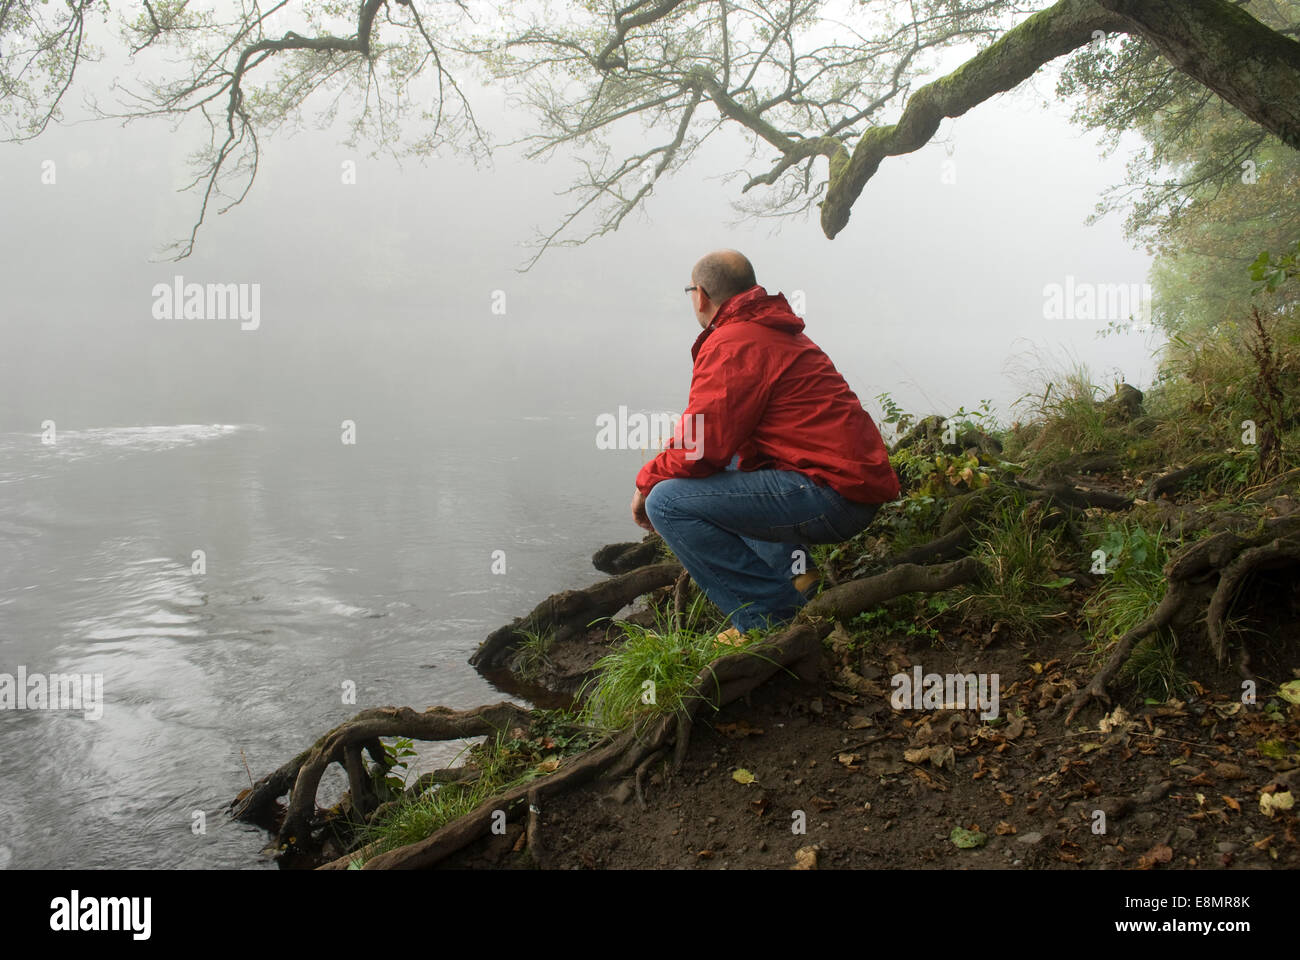 Gainford, County Durham, UK. 11th October 2014. A man looks out at the mist and fog along the upper reaches of the - Stock Image